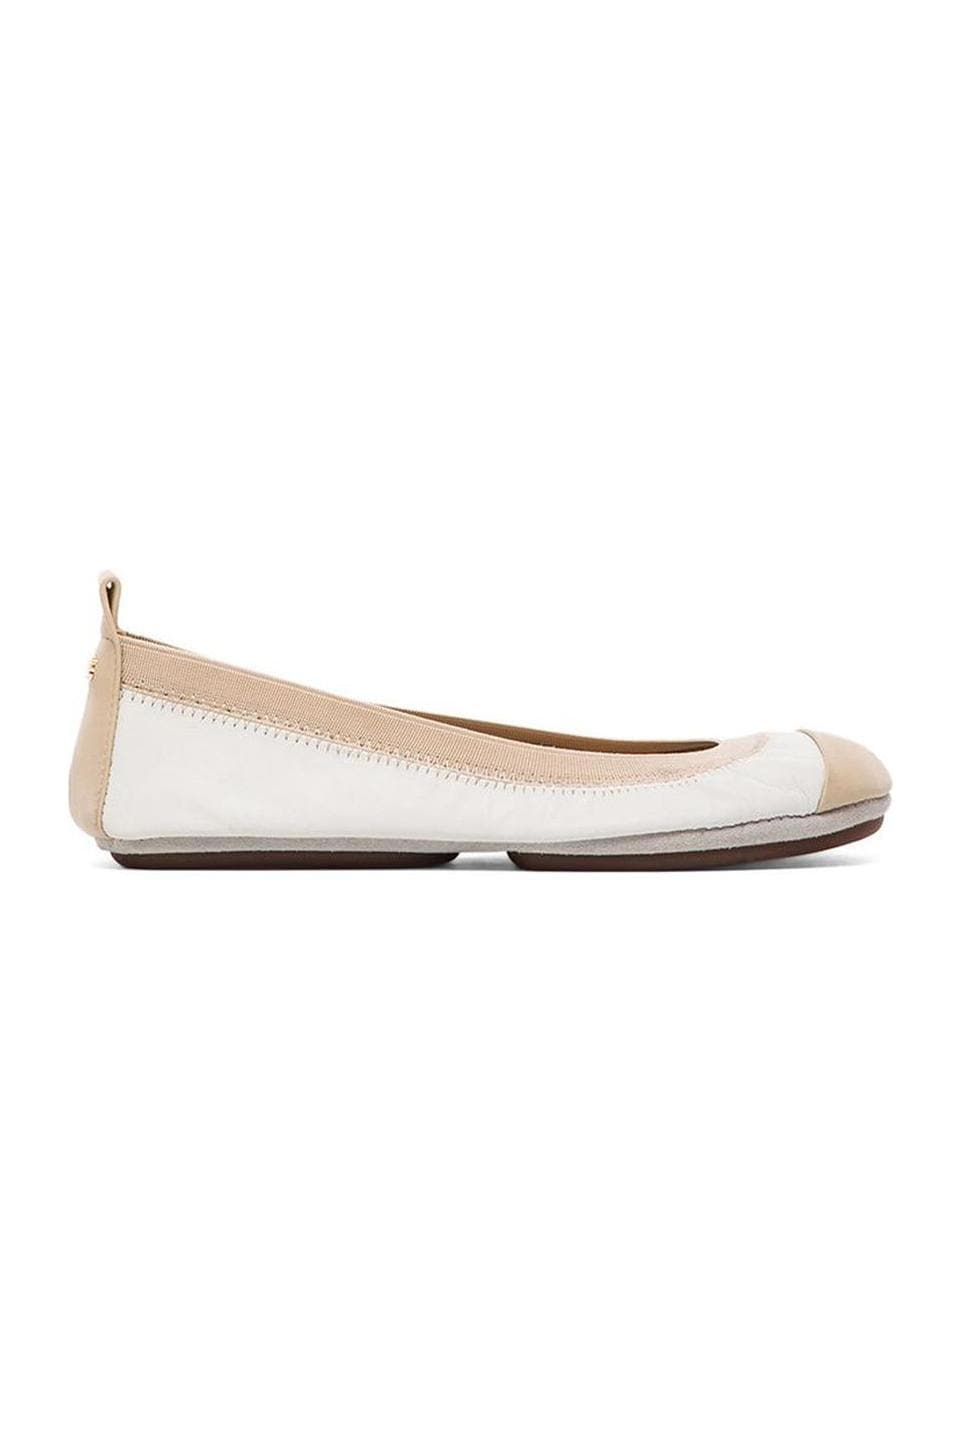 Yosi Samra Samantha Soft Leather Fold Up Flat in White/Biscotti